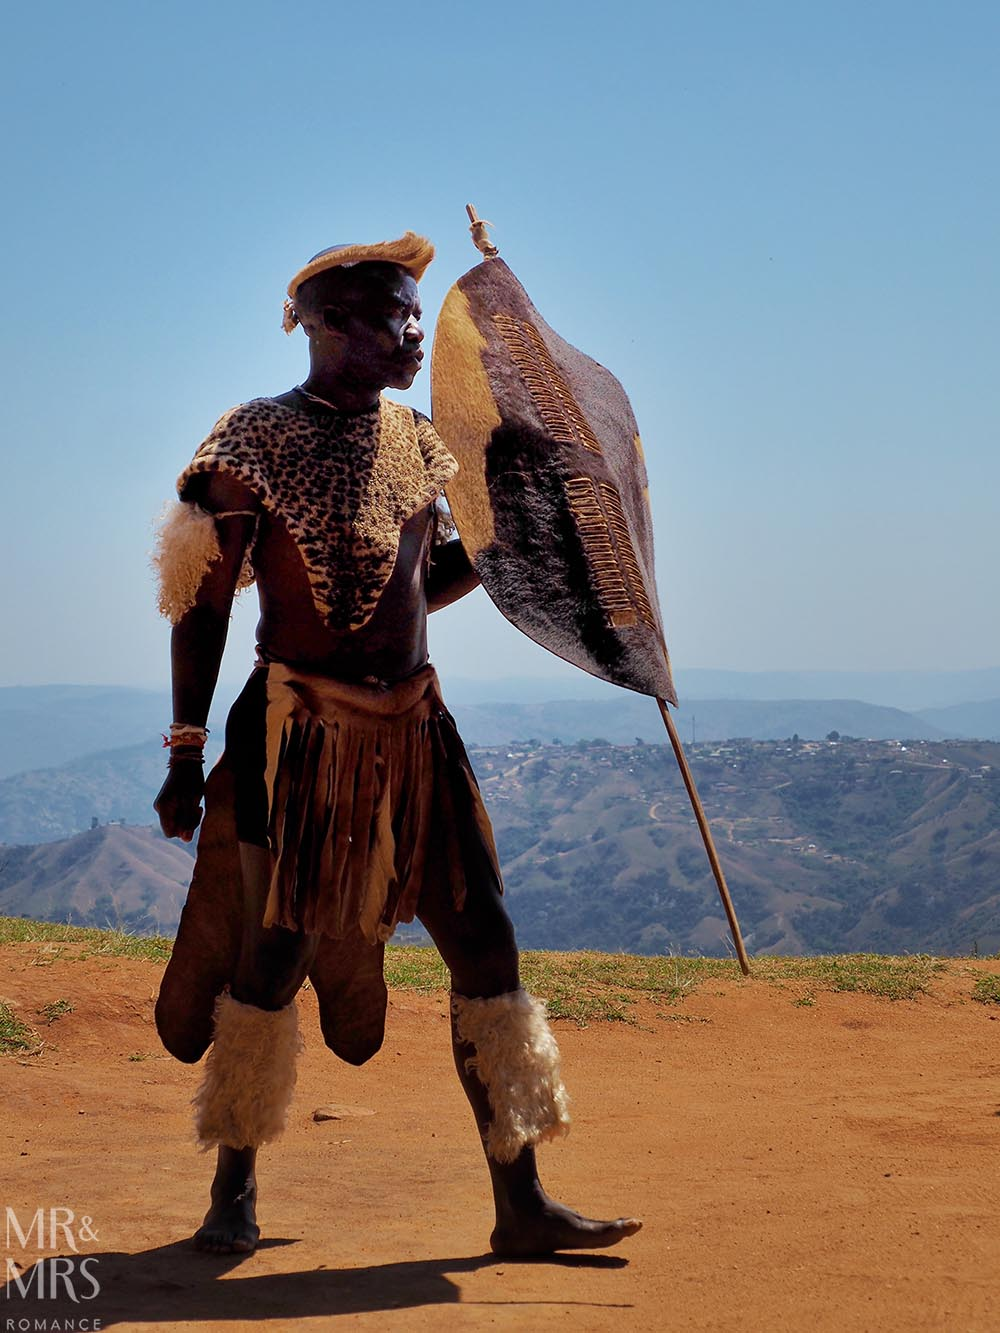 South Africa Tourism - Zulu performance